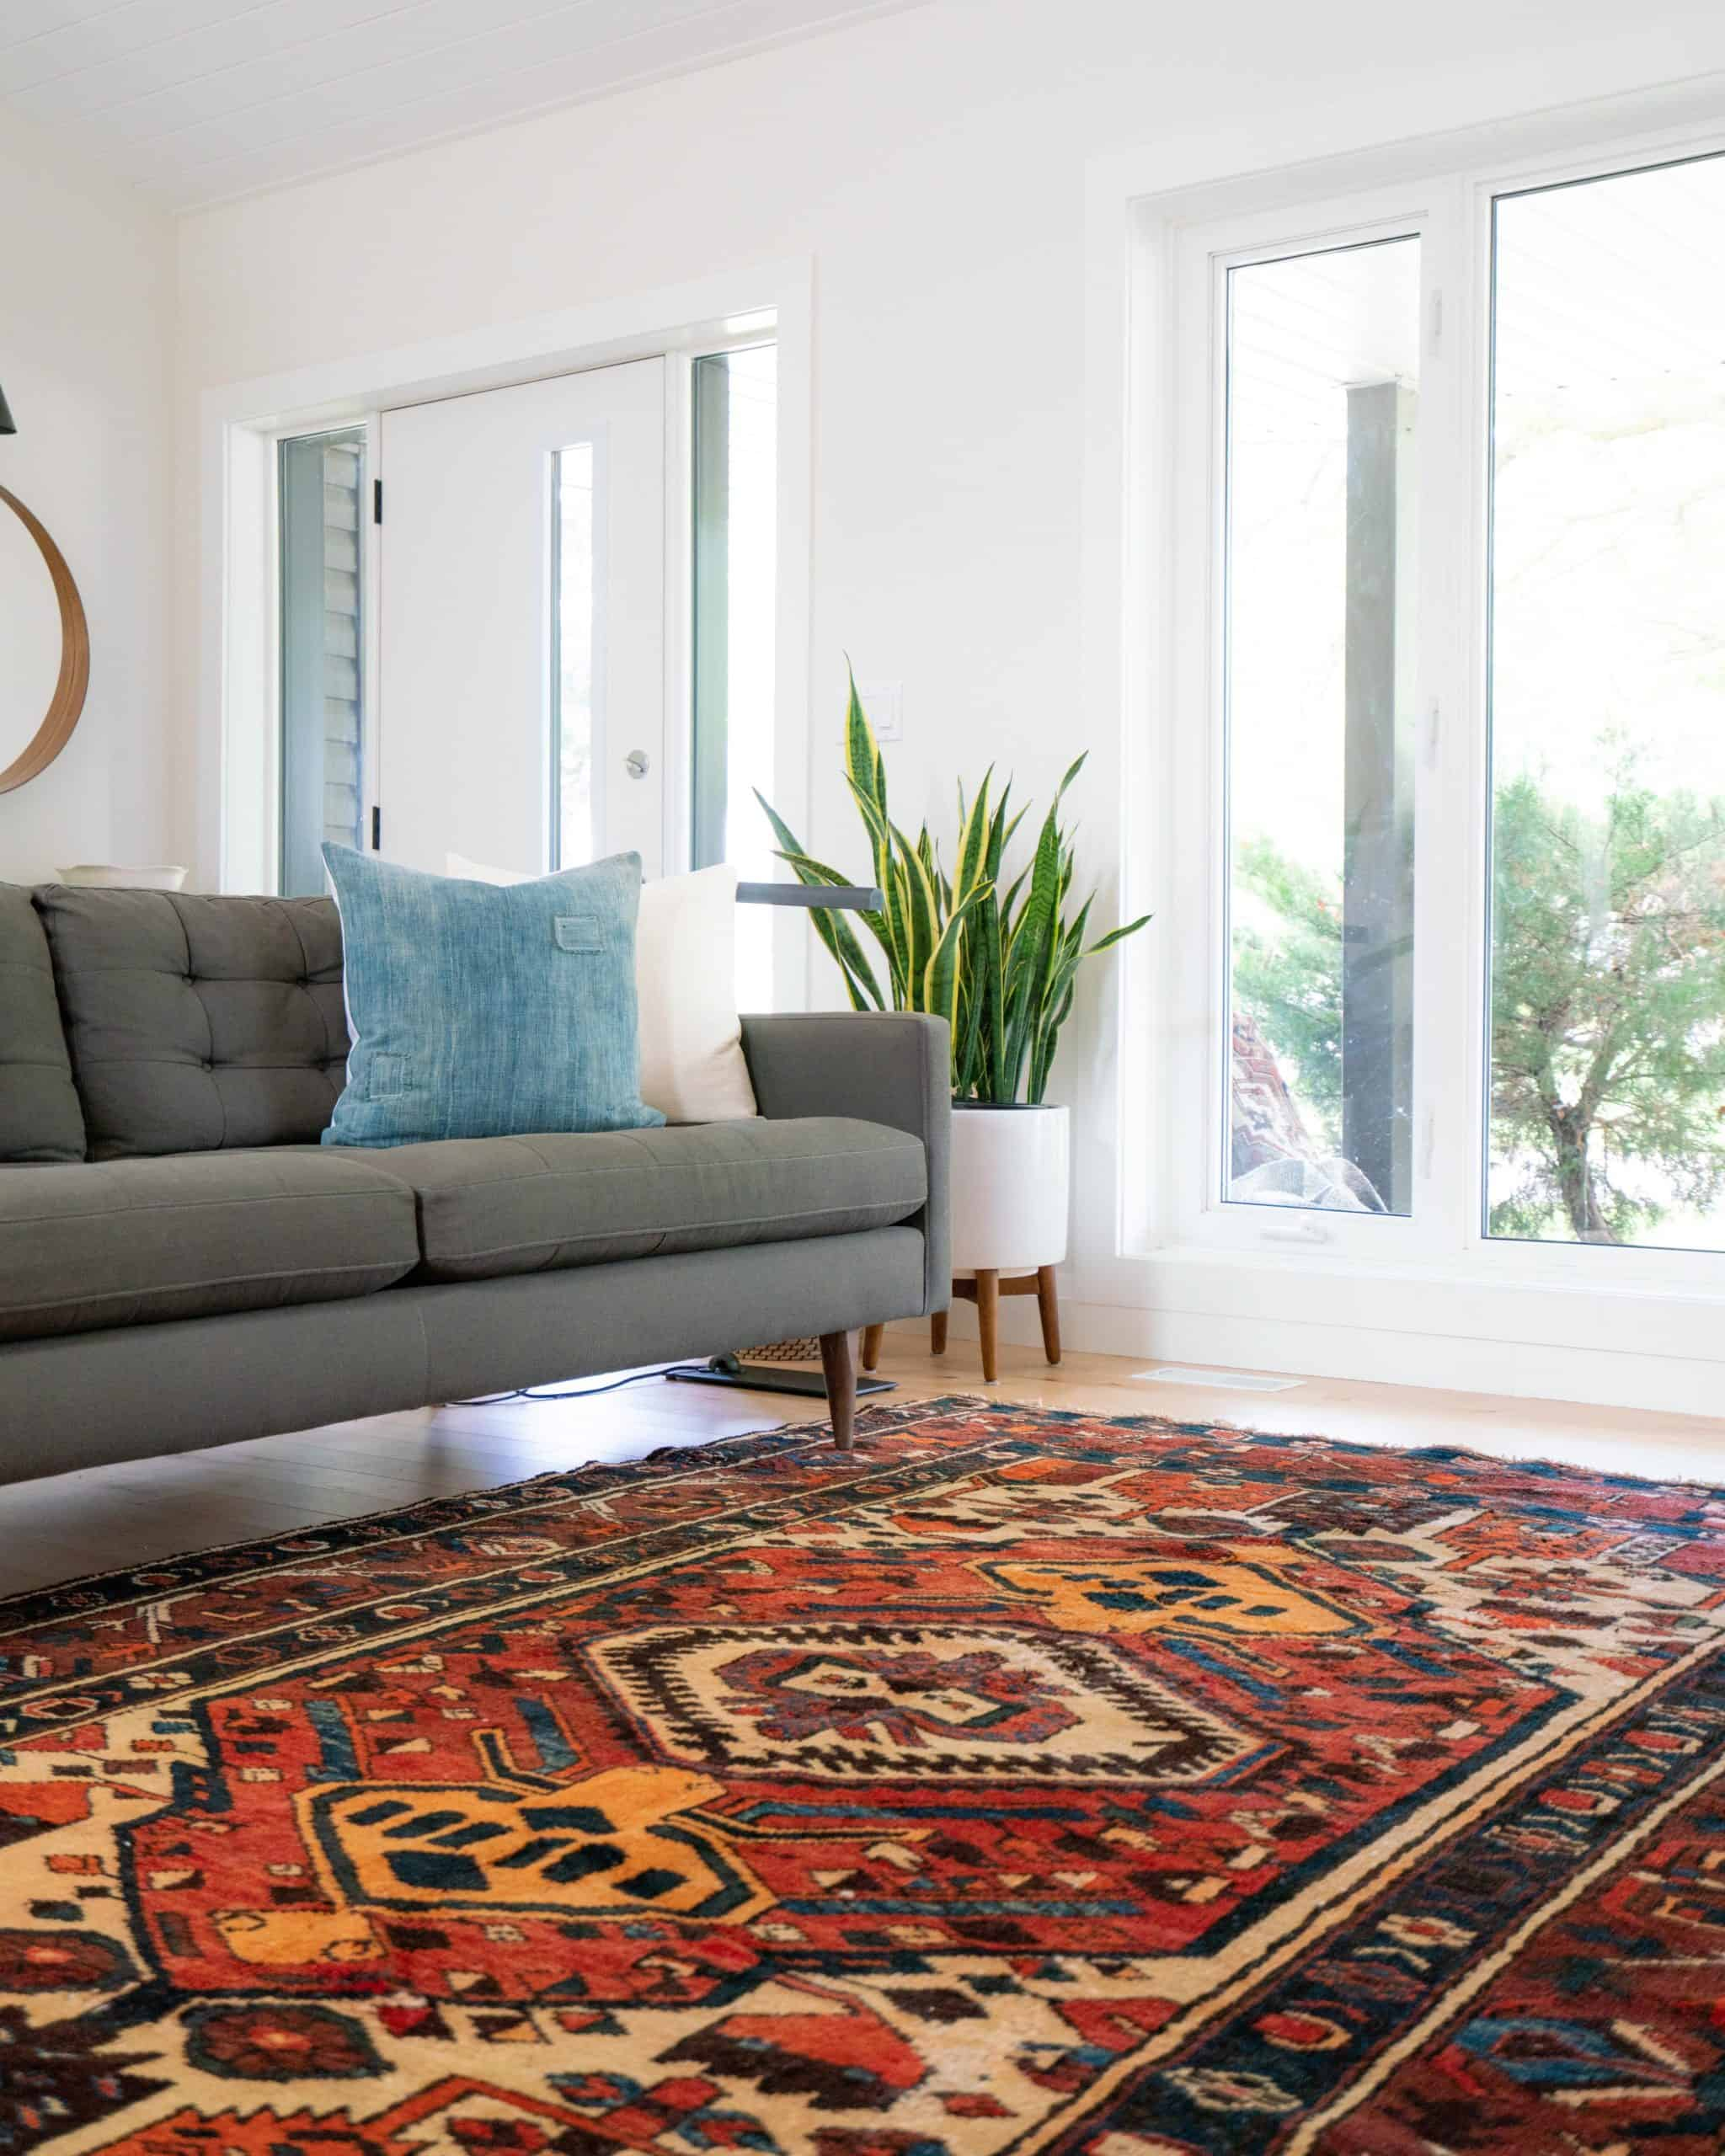 How to Decorate Your Home With Modern Home Decor